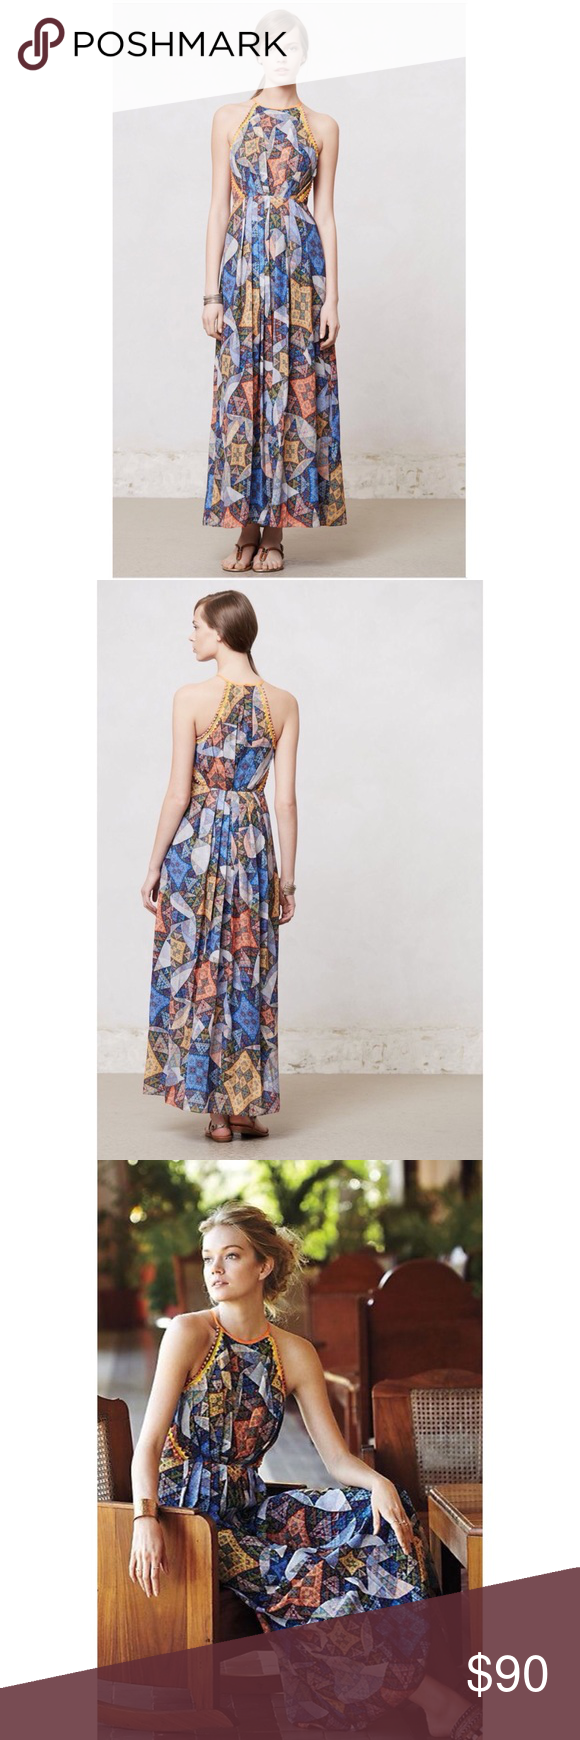 78fde2adb2f1 Anthropologie Ranna Gill Condesa Maxi Dress This dress is in perfect  condition. Never been worn